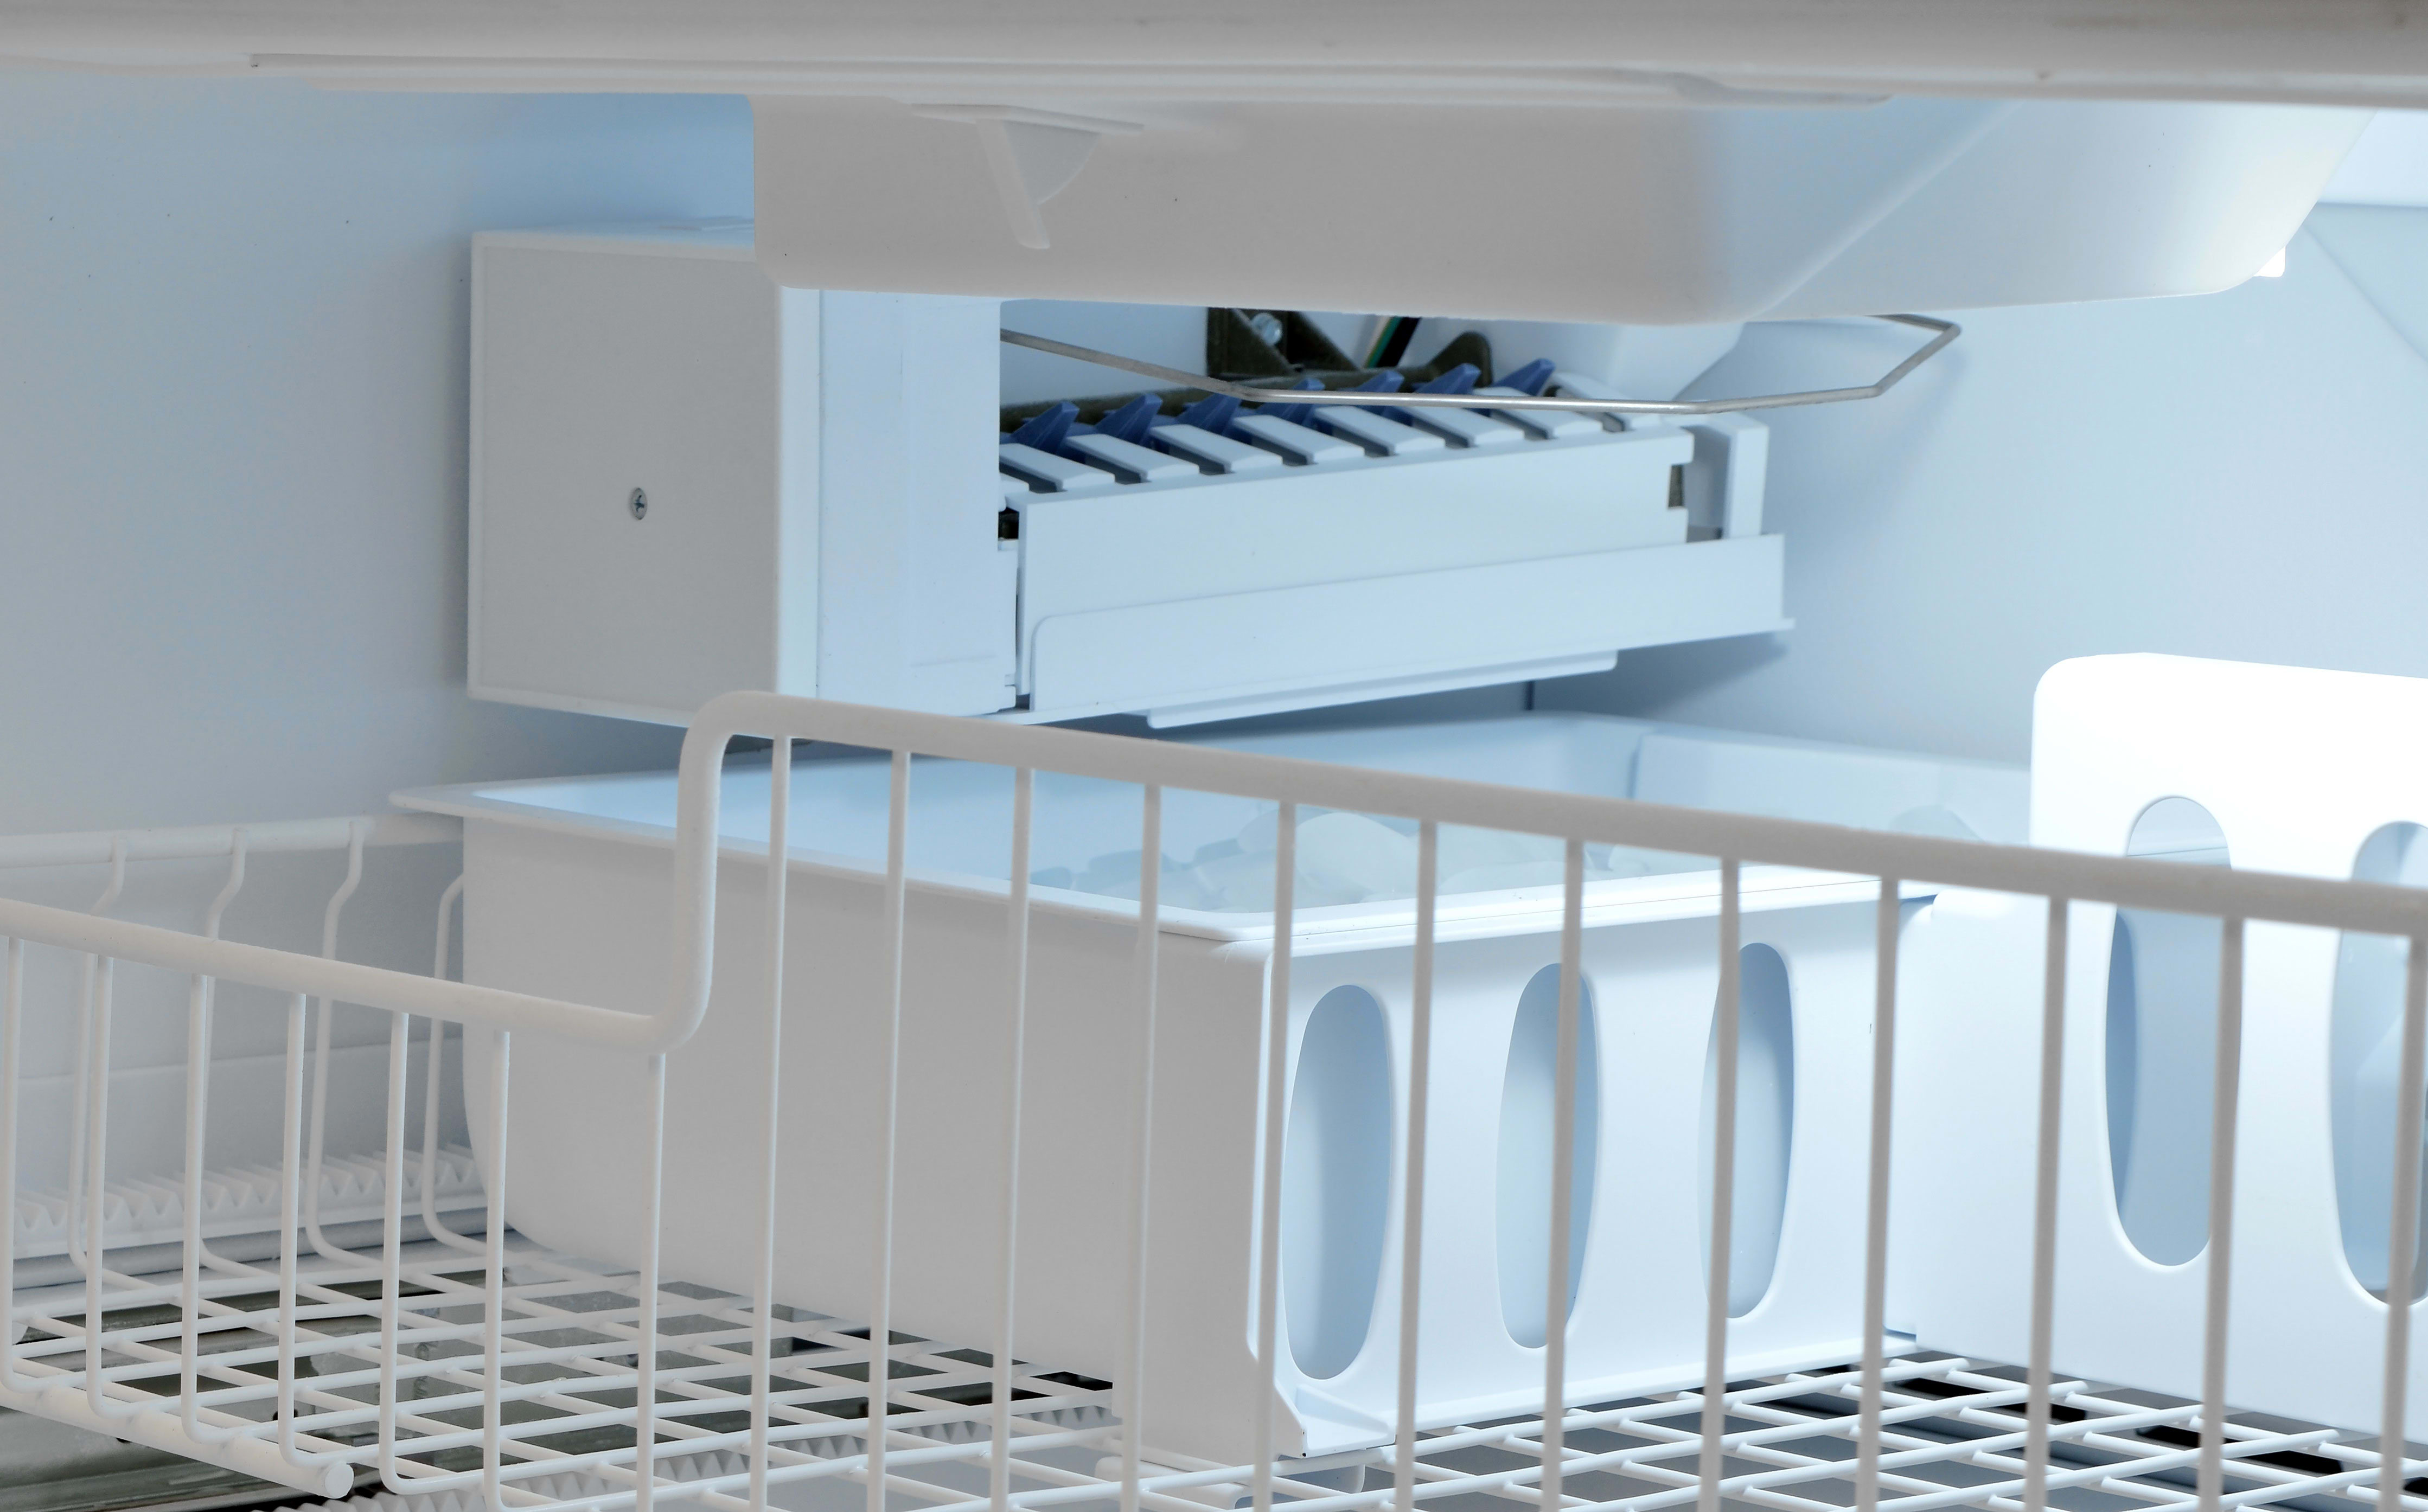 The Whirlpool WRF535SMBM's ice maker is stuck down the freezer, with just a flip wire to turn it on or off.